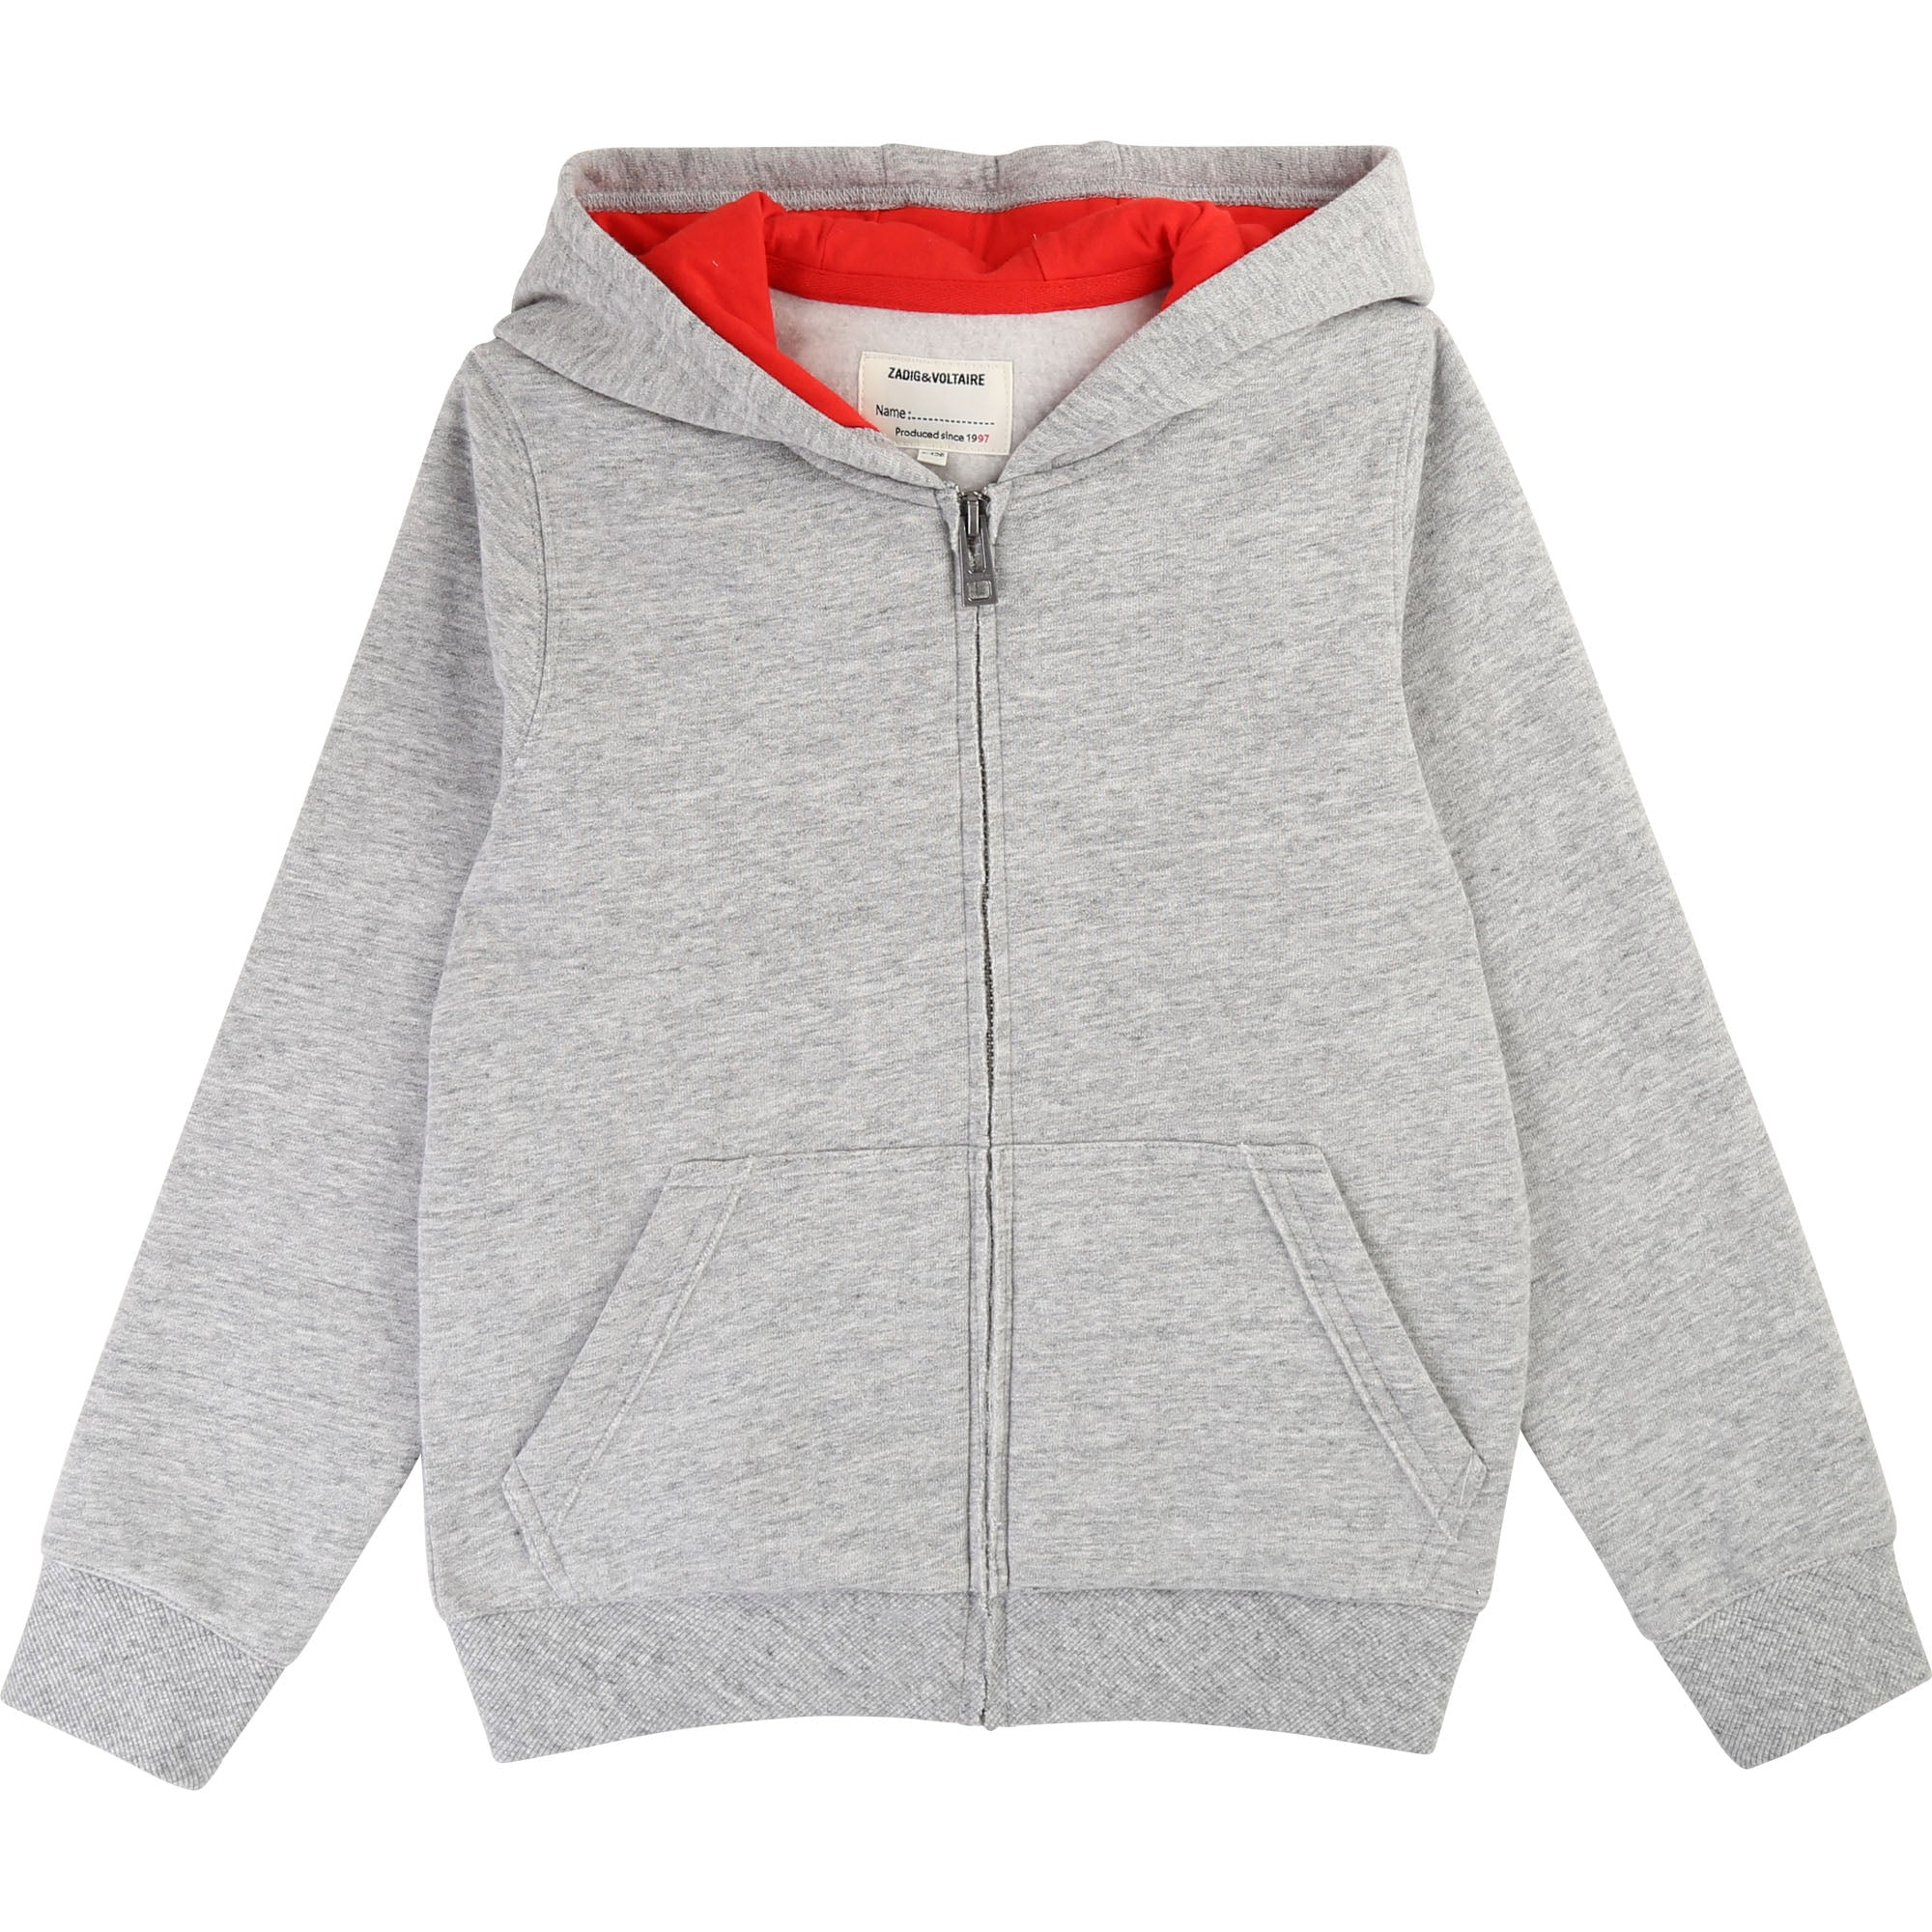 Boys Grey Logo Hooded Top